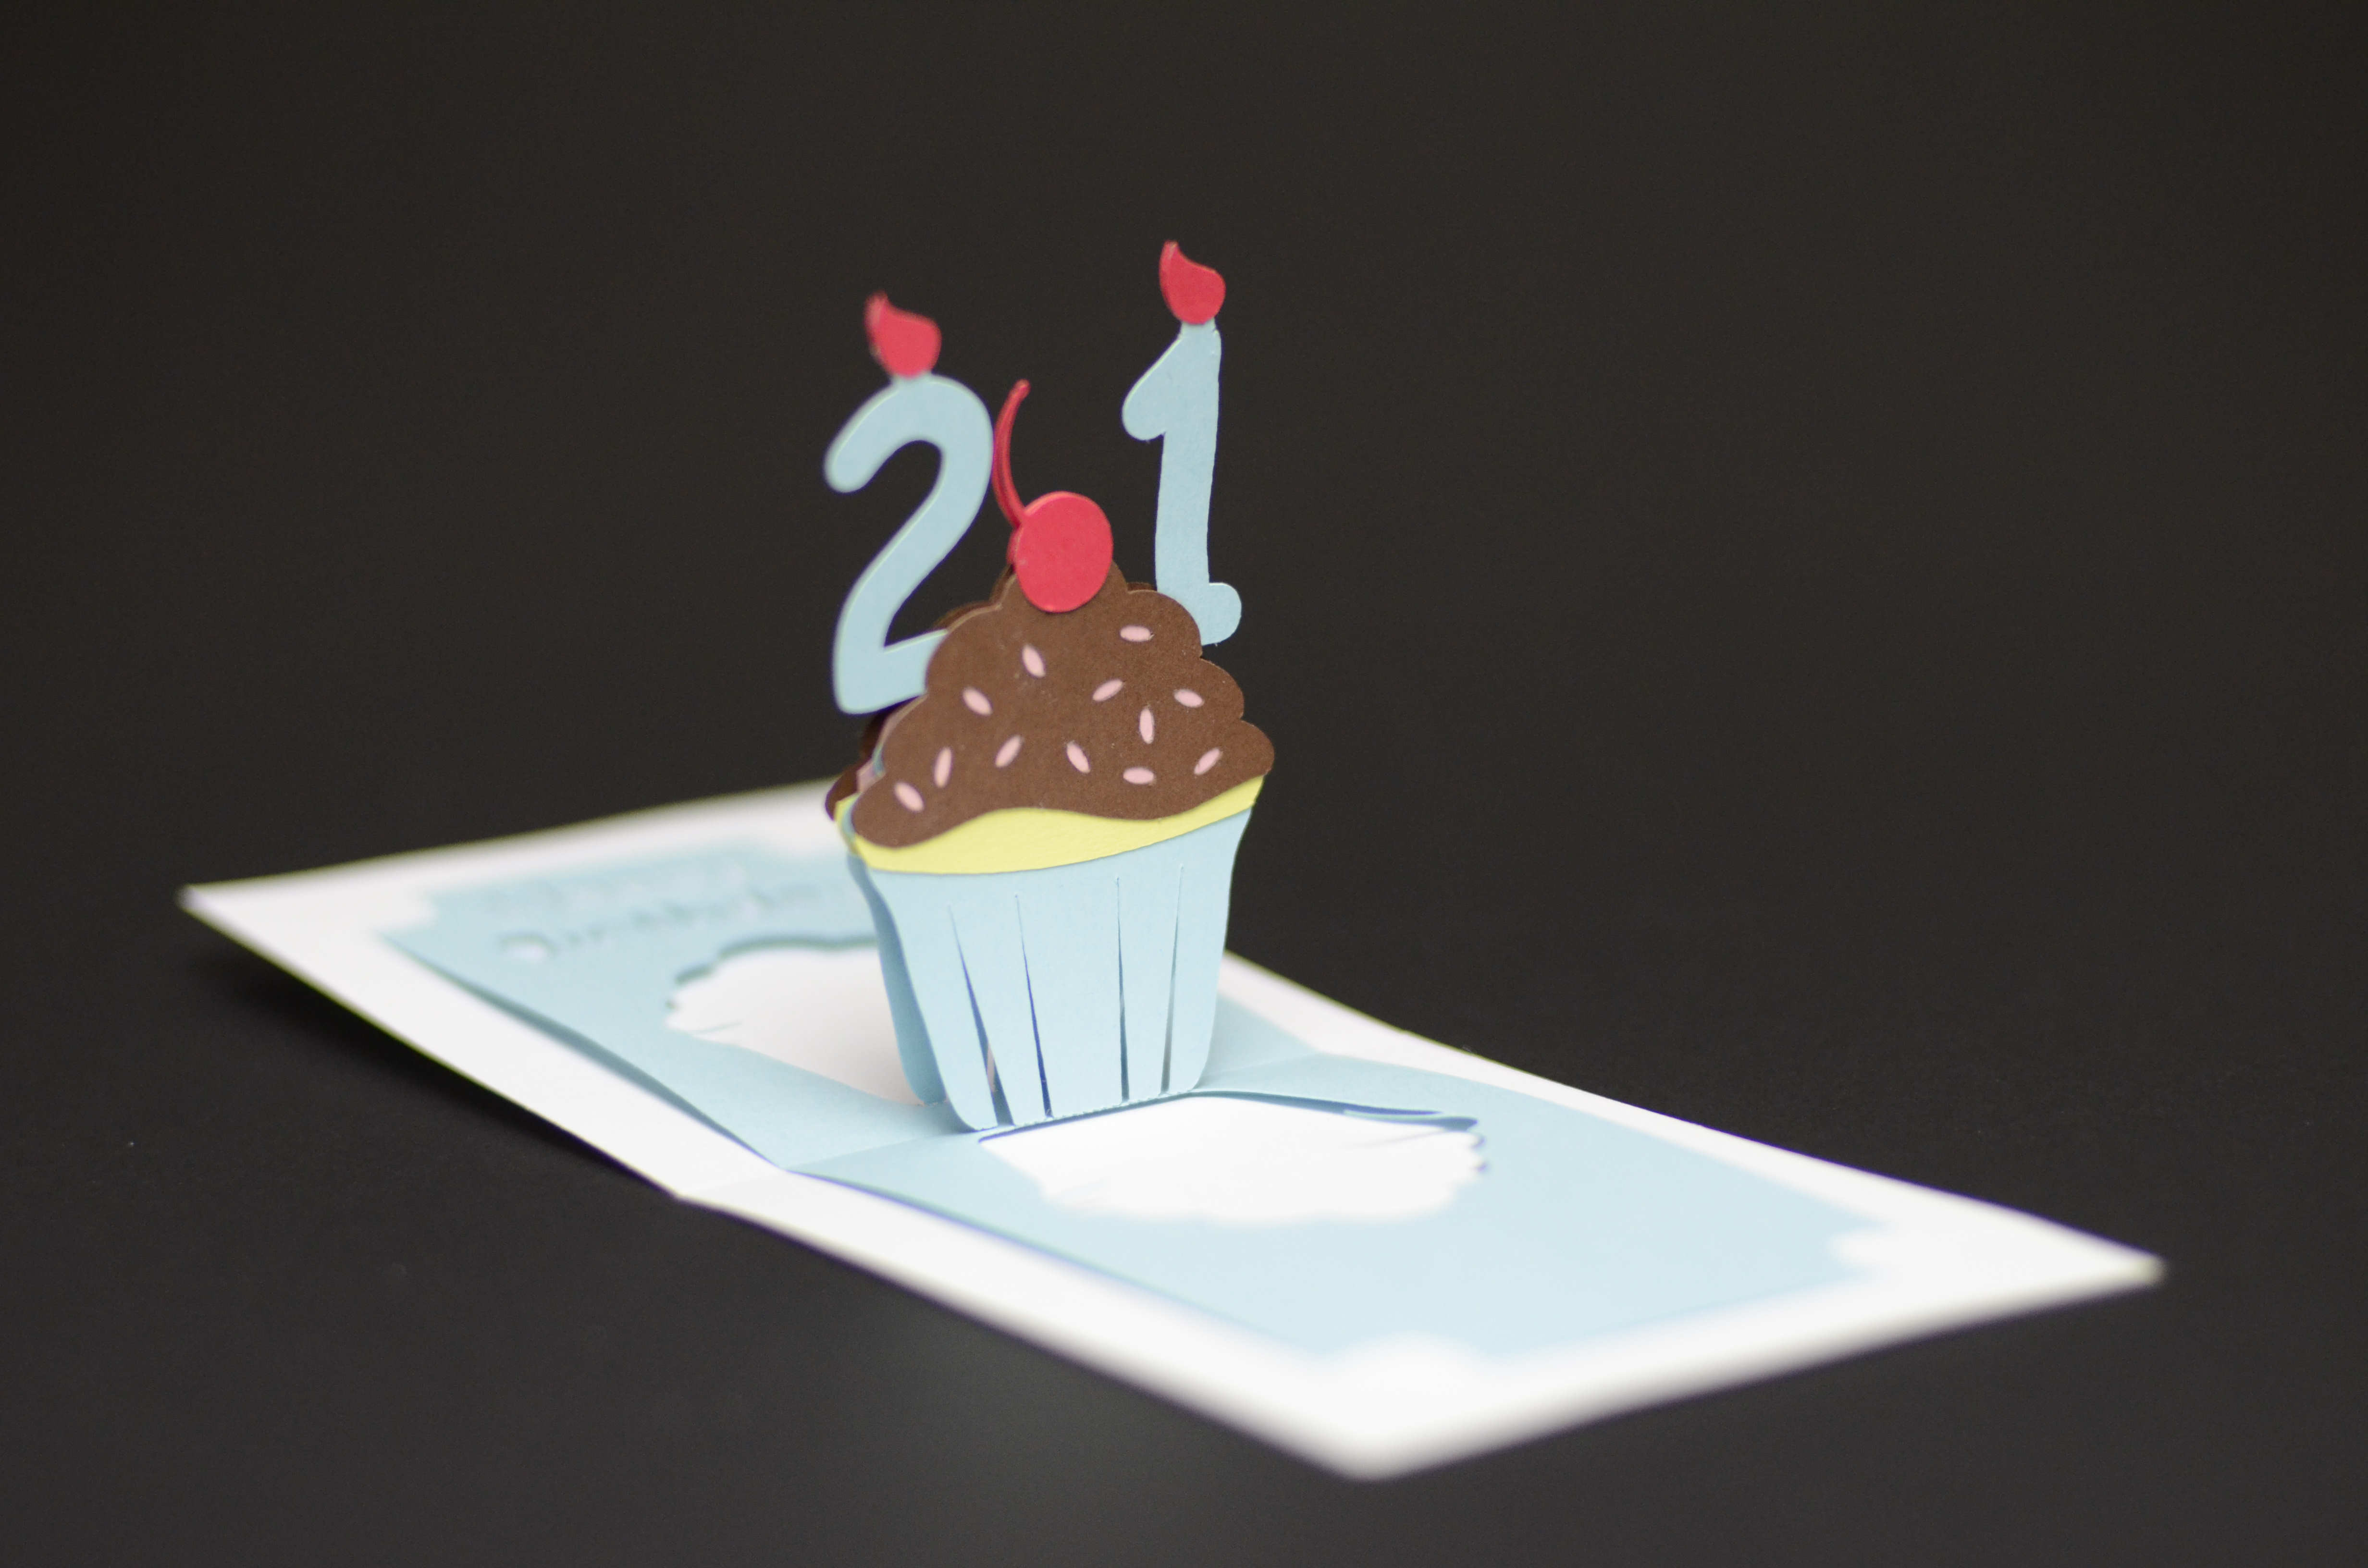 Best ideas about Pop Up Birthday Card Template . Save or Pin Birthday Pop Up Card Detailed Cupcake Tutorial Creative Now.